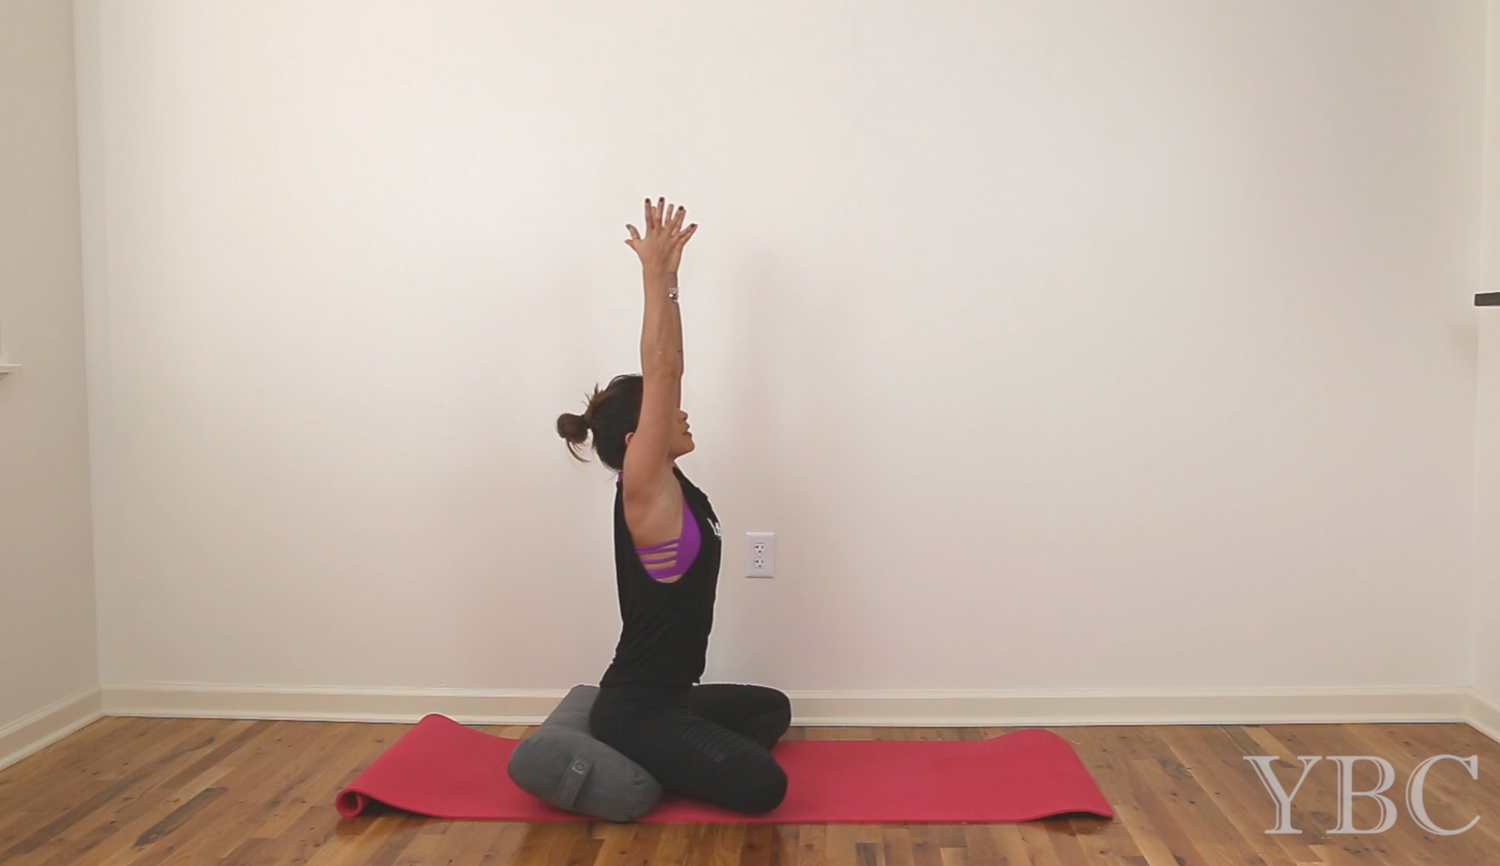 20 Minute Yoga for Olympic Lifters - chest and shoulder mobility  Wearing:  Moto Leggings  &  tank  c/o  Evolve Fitwear . Bra by  Sadhana Clothing .  Using:  Clever yoga mat ,  manduka bolster .